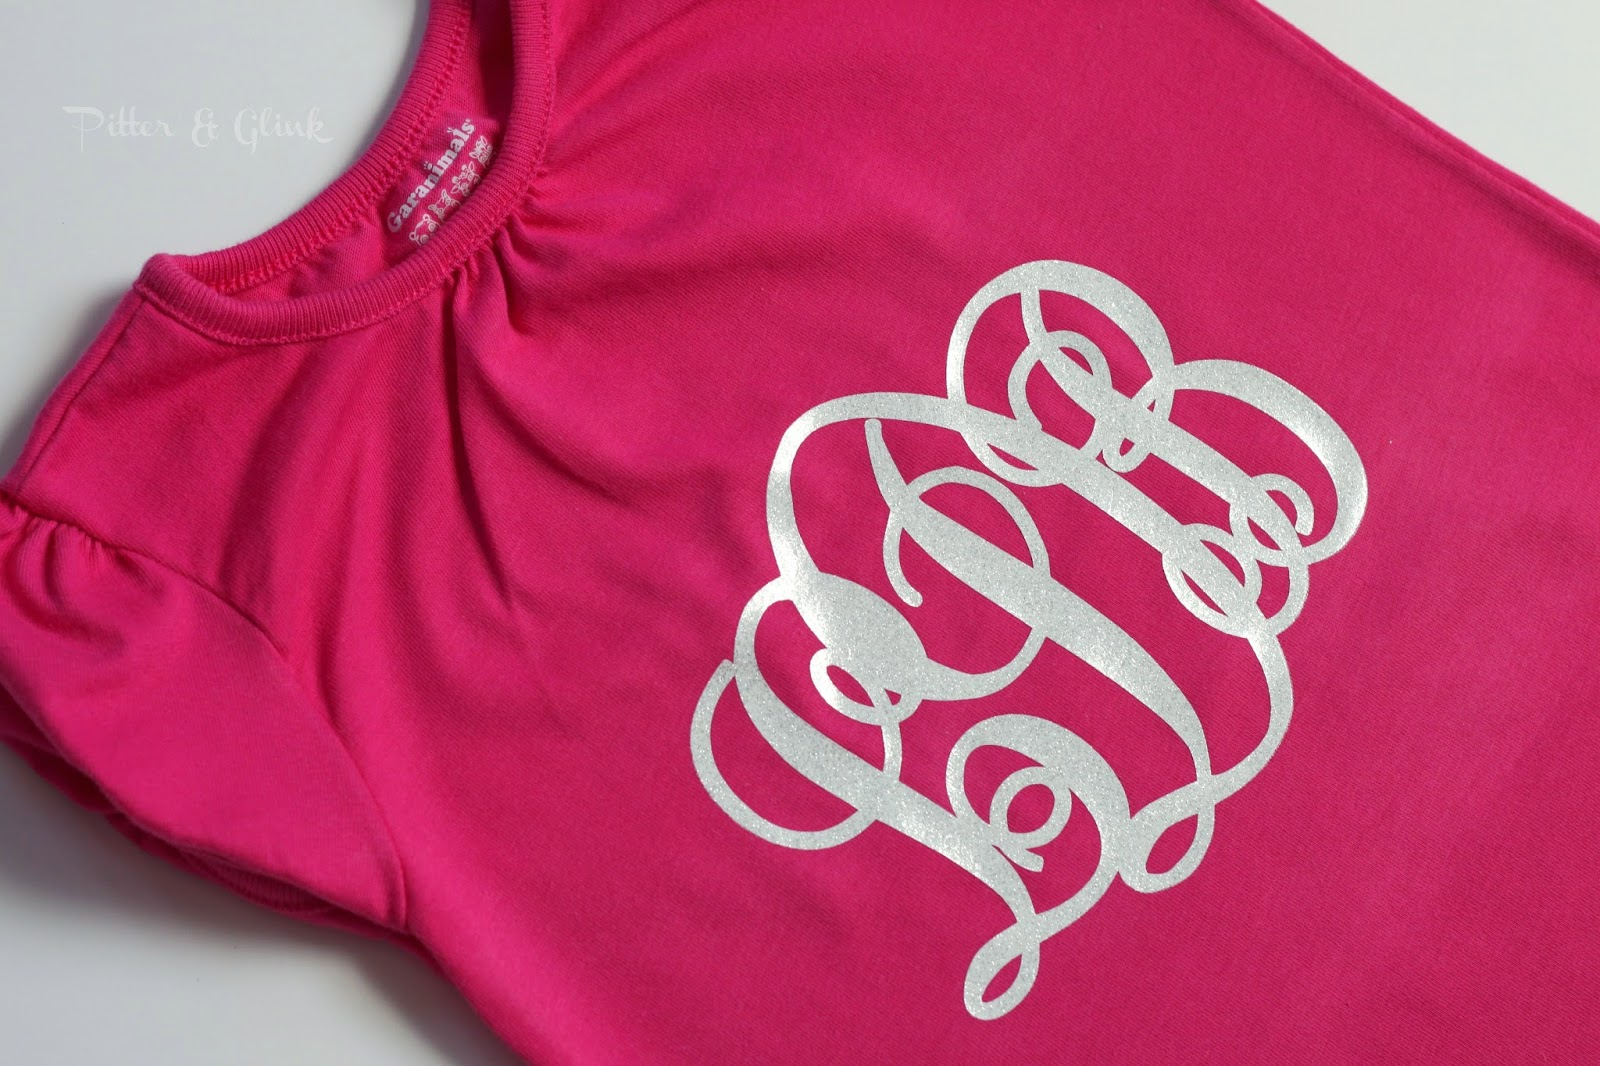 Create A Monogrammed T Shirt With Silhouette Heat Transfer Material Tutorial From Pitter